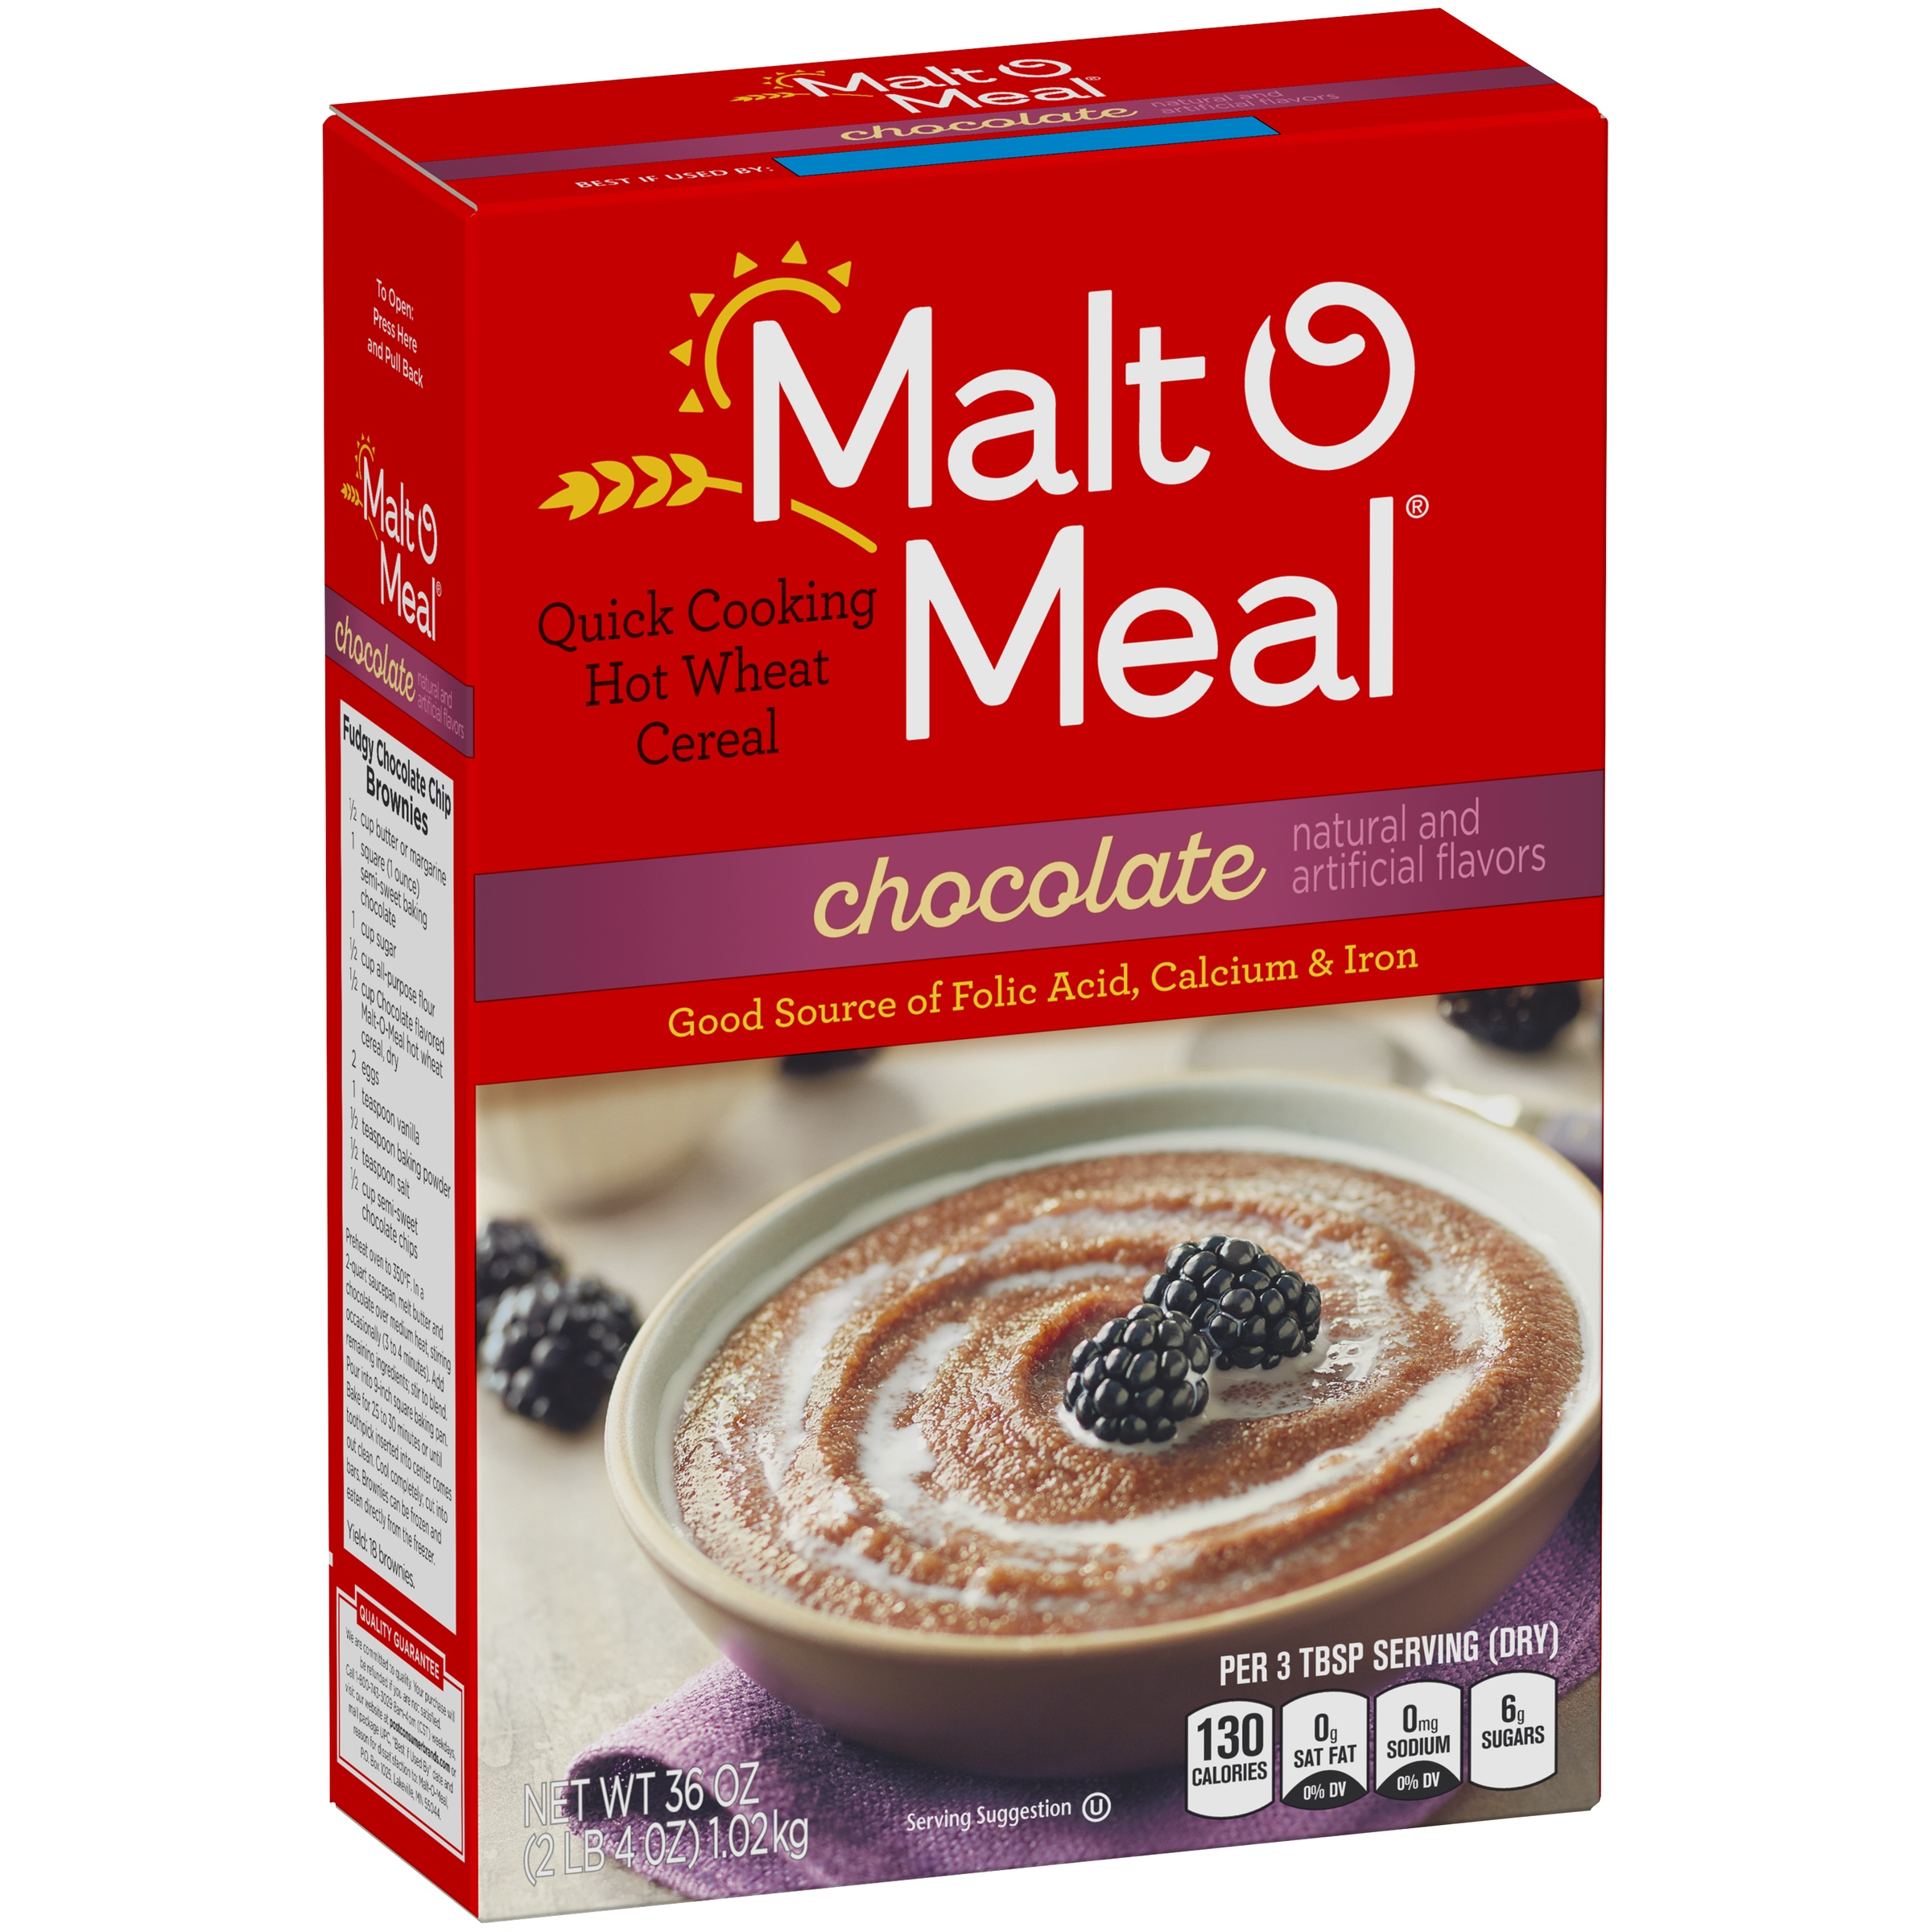 Malt-O-Meal® Chocolate Quick Cooking Hot Wheat Cereal 36 oz. Box